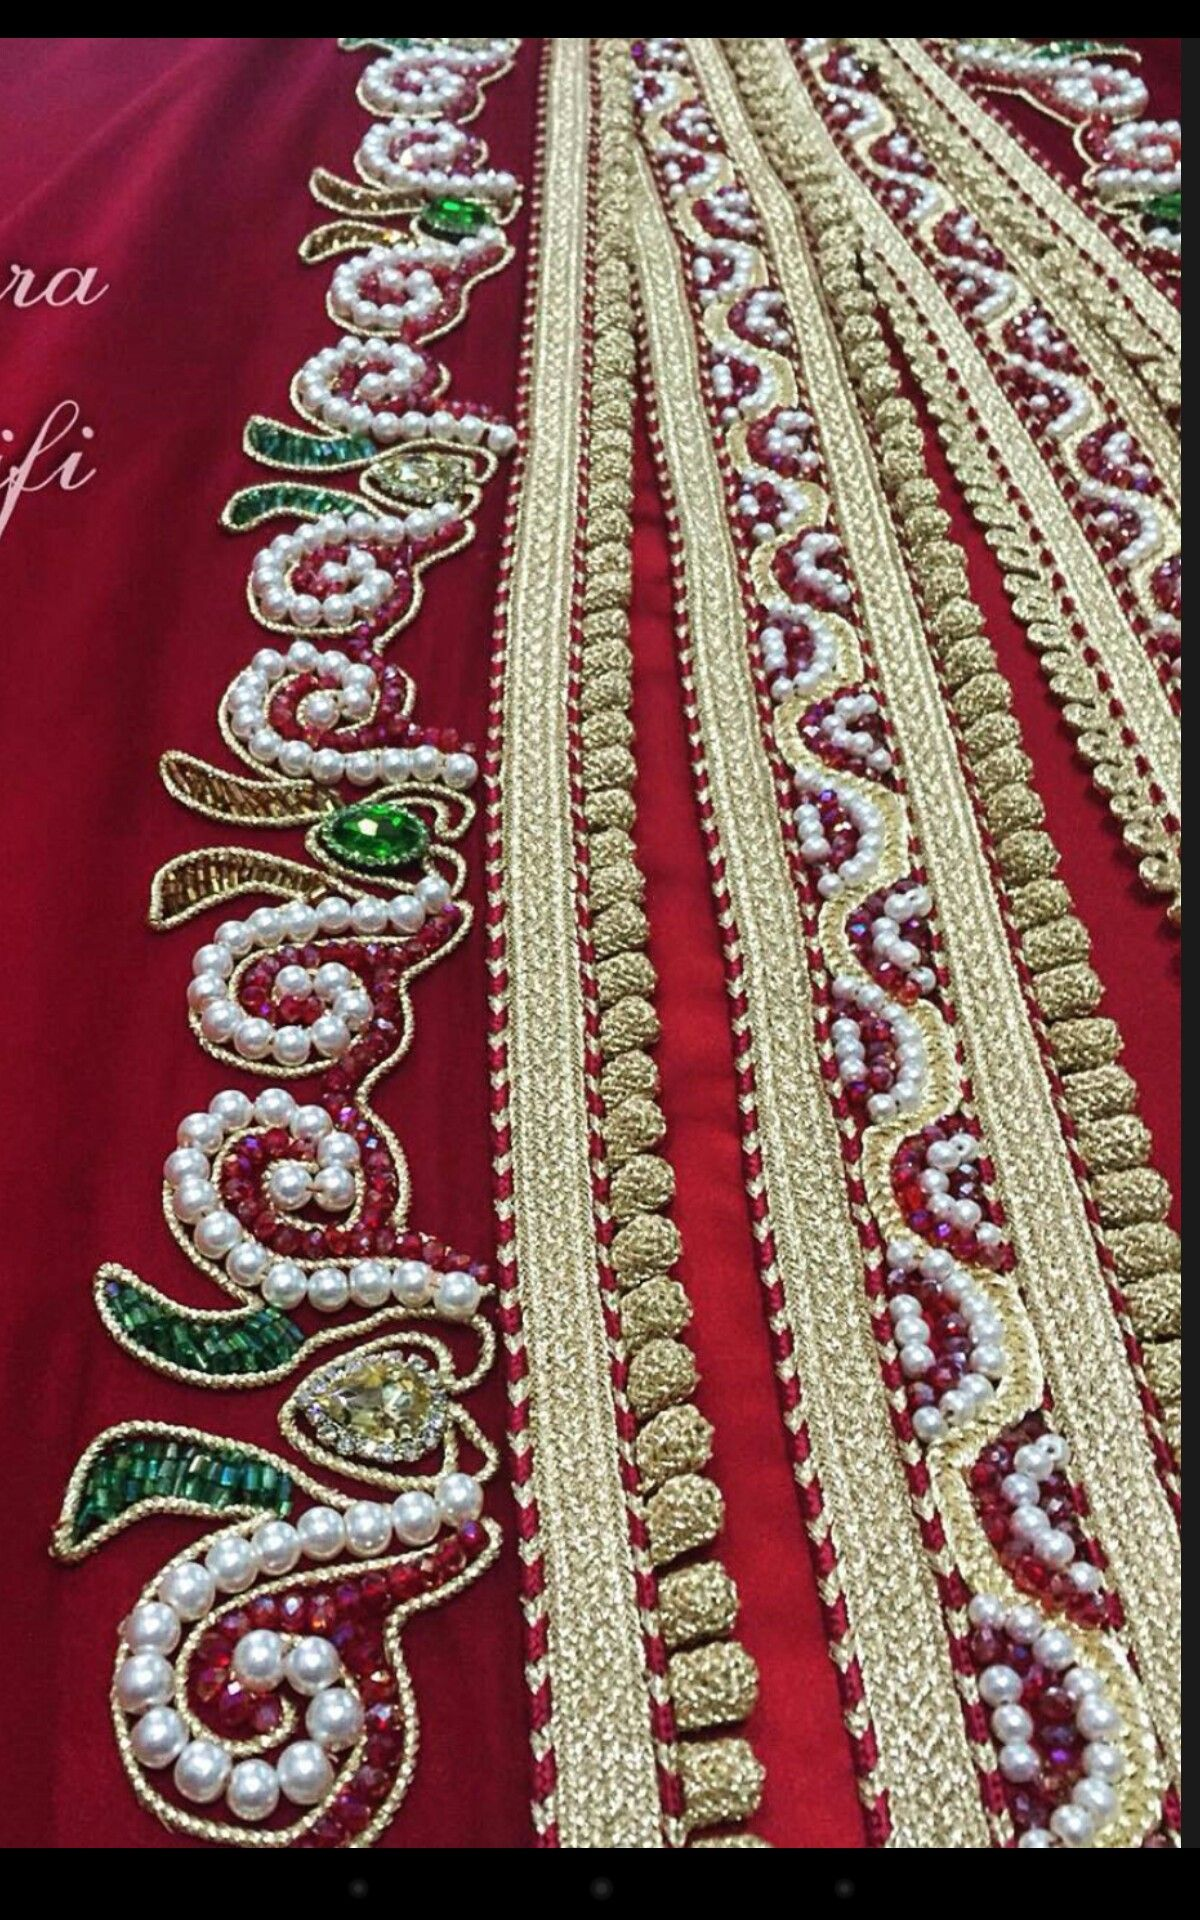 Pin by nina nina on perles pinterest caftans pearl embroidery pearl embroidery hand embroidery kaftans beadwork sequins dressing rooms ganchillo beading embroidery patterns bankloansurffo Images